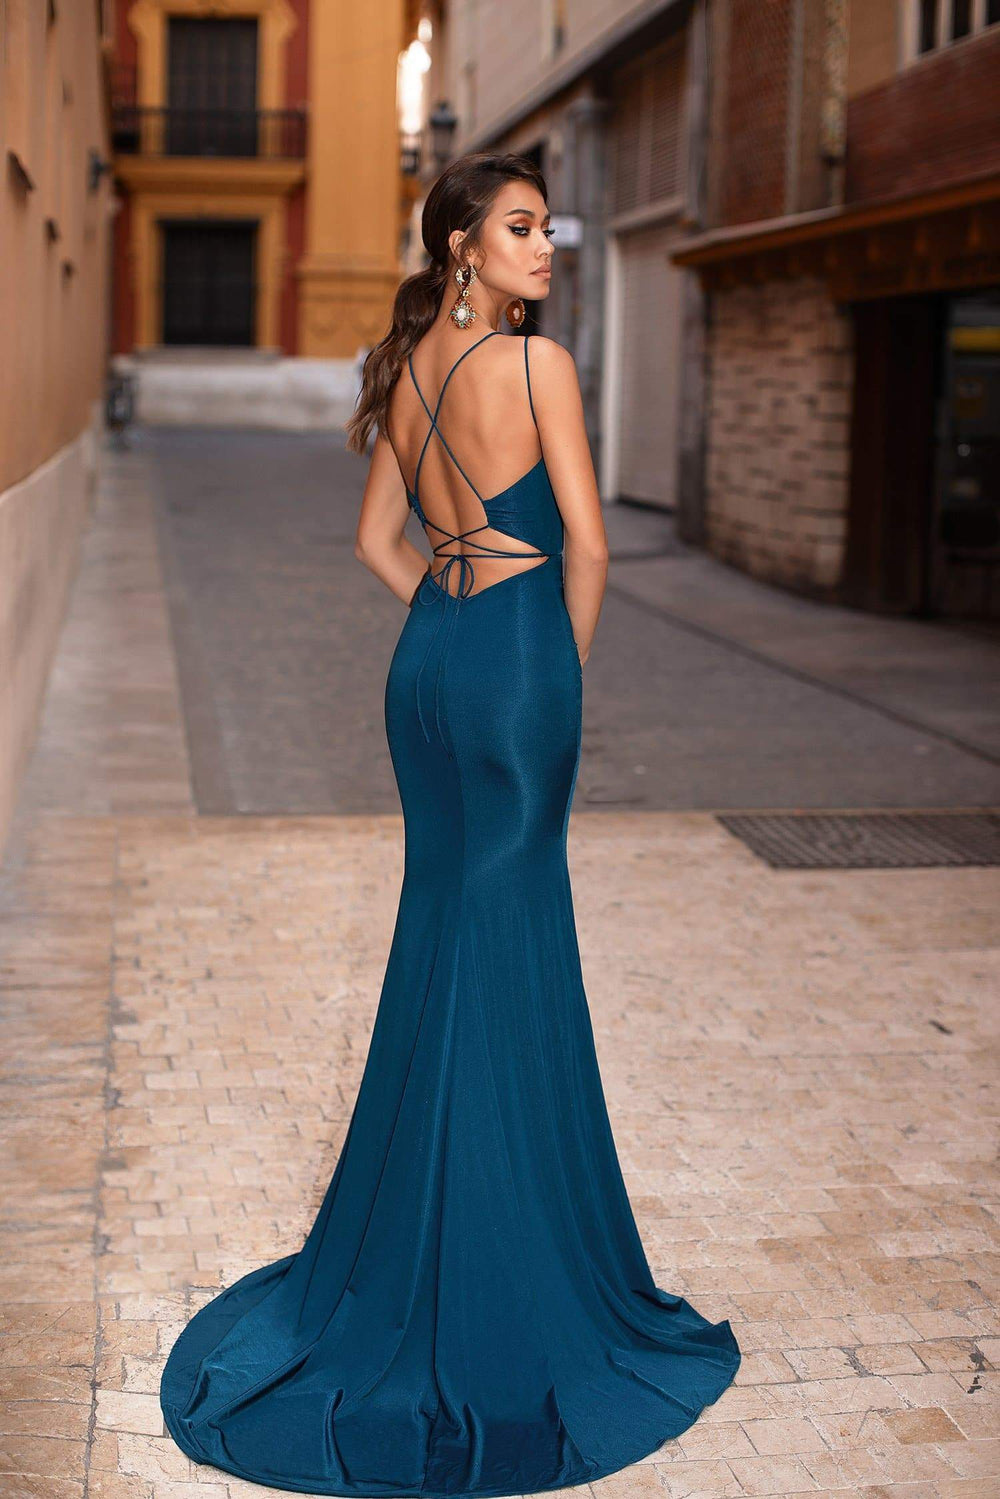 c81244d5b1b7 Maribel - Teal Mermaid Gown with Plunge Neck   Tie-Up Back Detail